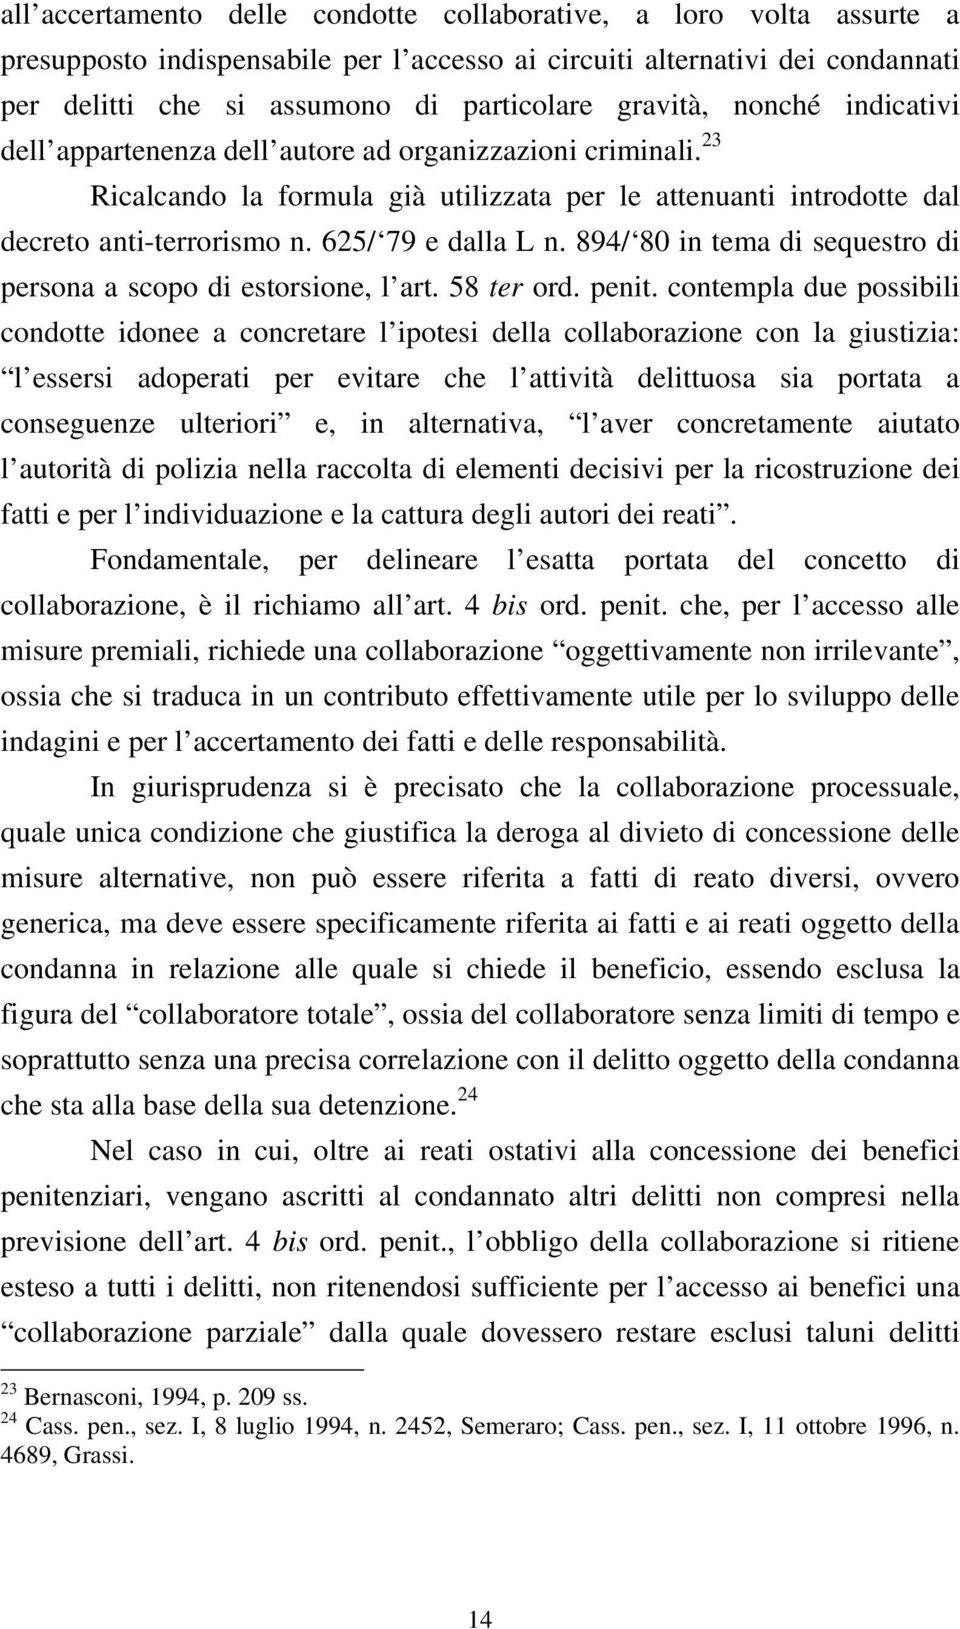 625/ 79 e dalla L n. 894/ 80 in tema di sequestro di persona a scopo di estorsione, l art. 58 ter ord. penit.